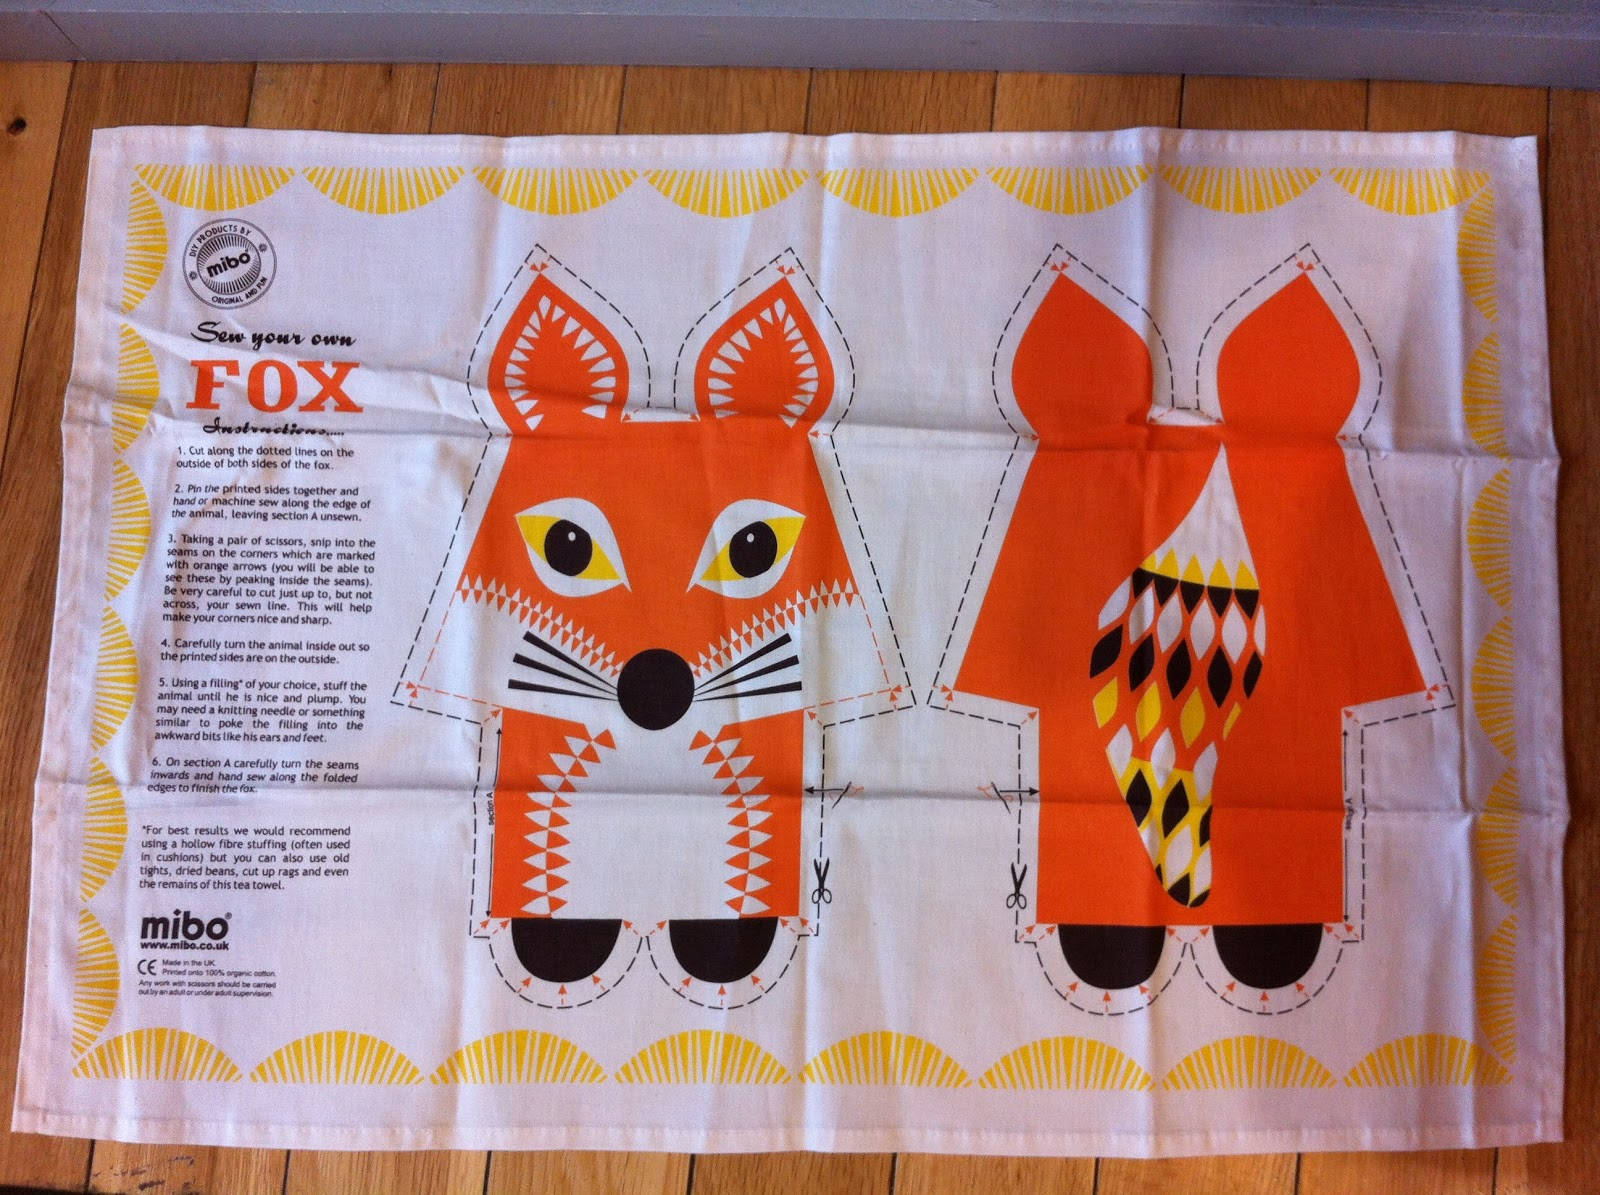 Mibo sew your own fox tea towel